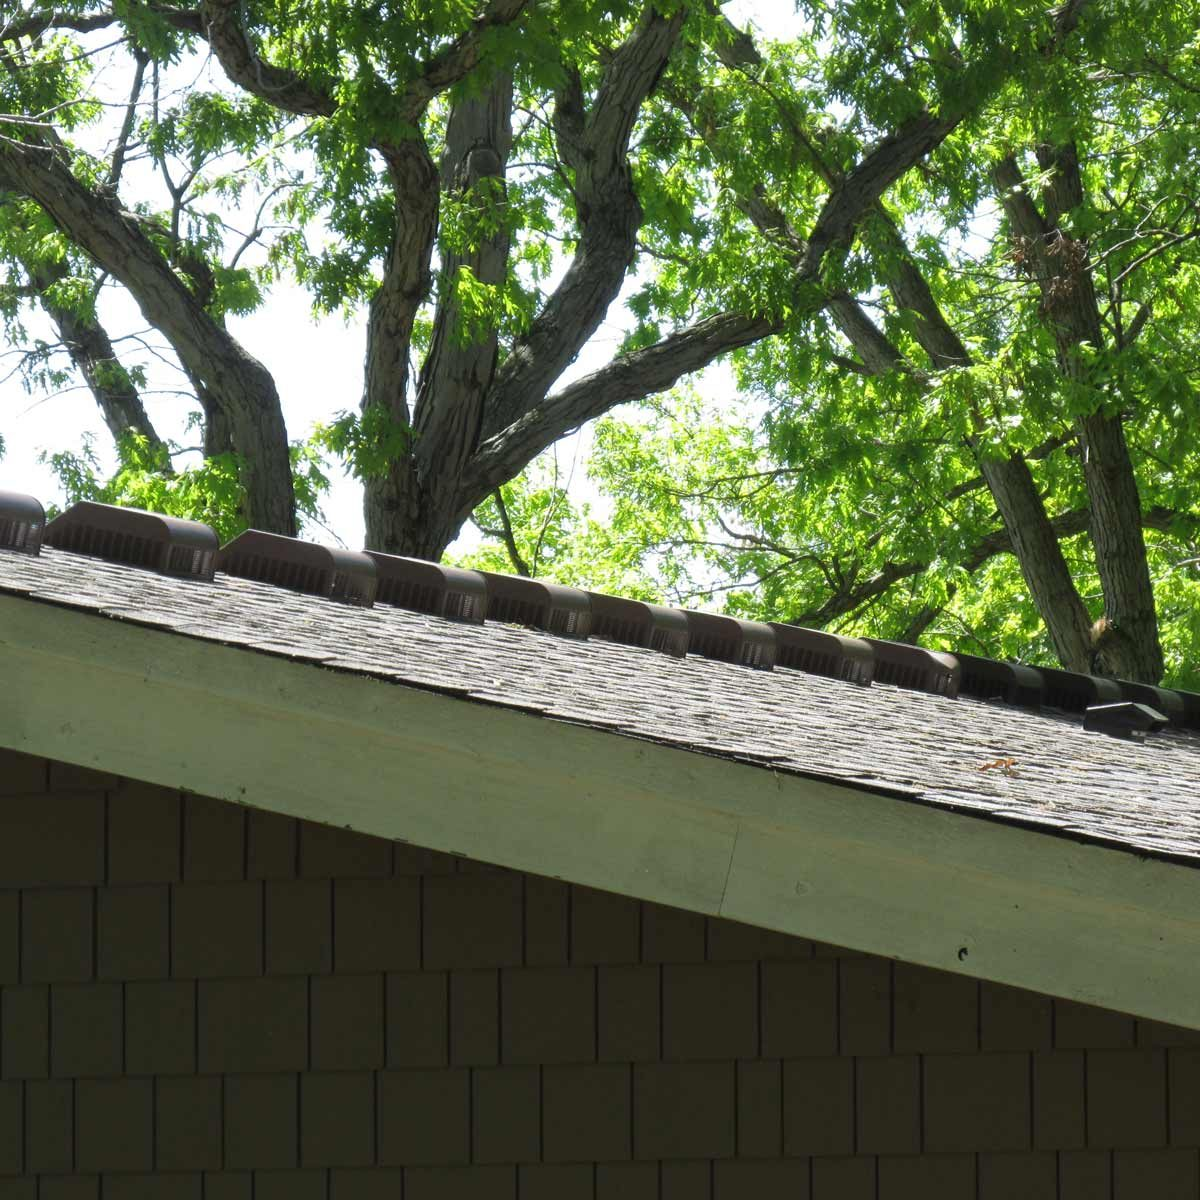 March of the roof vents